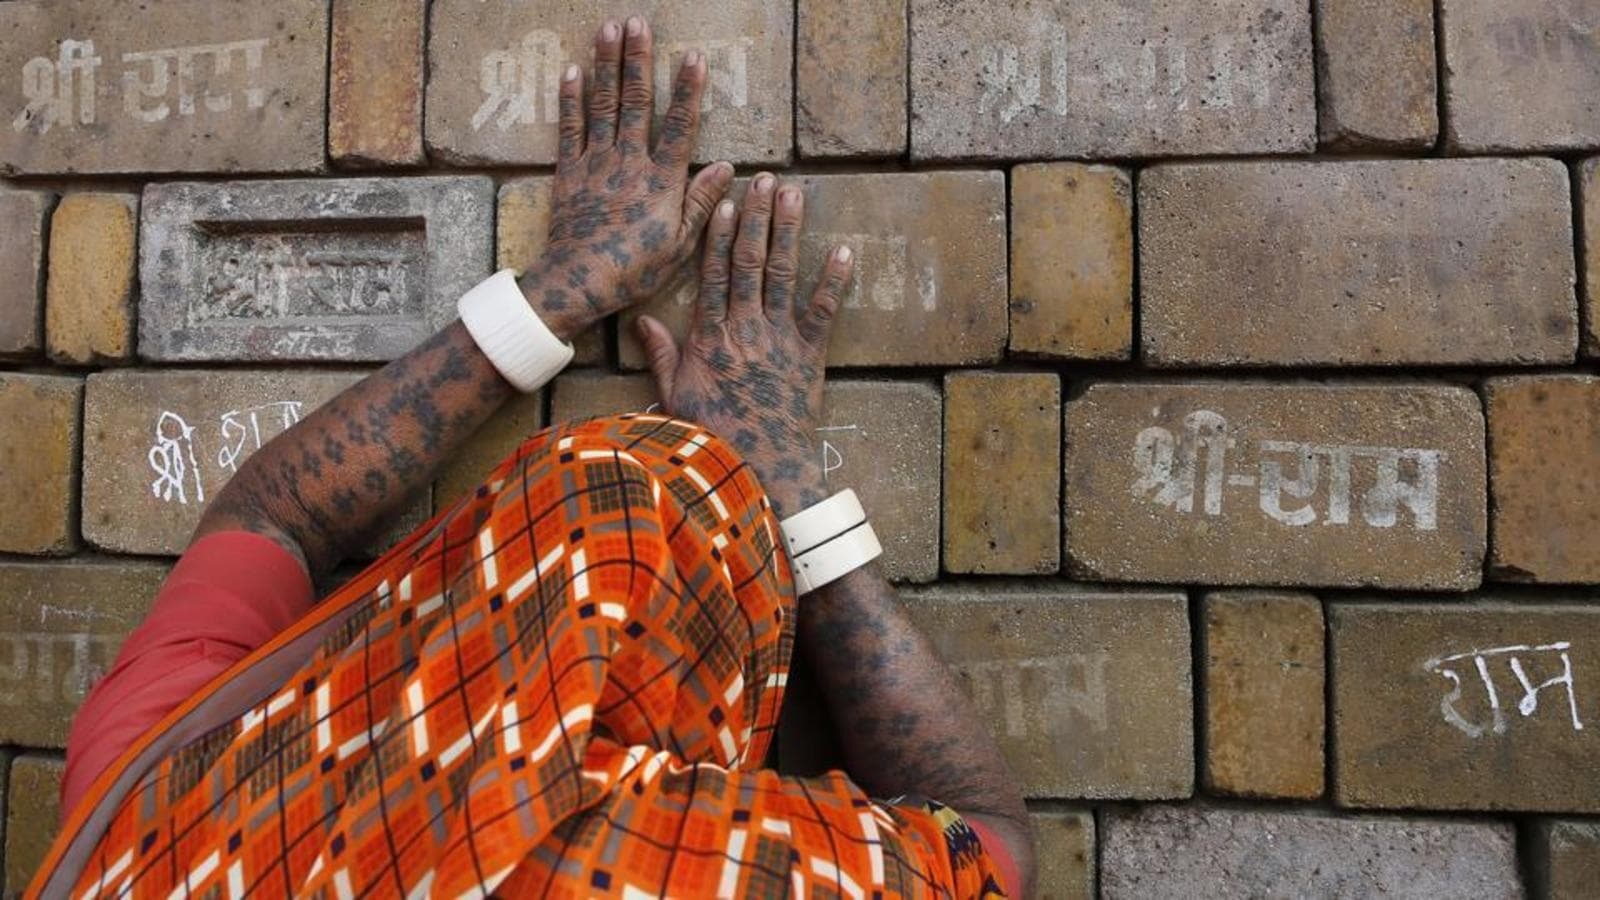 Ram temple in Ayodhya: Bricks donated in 1980s likely to be preserved, displayed